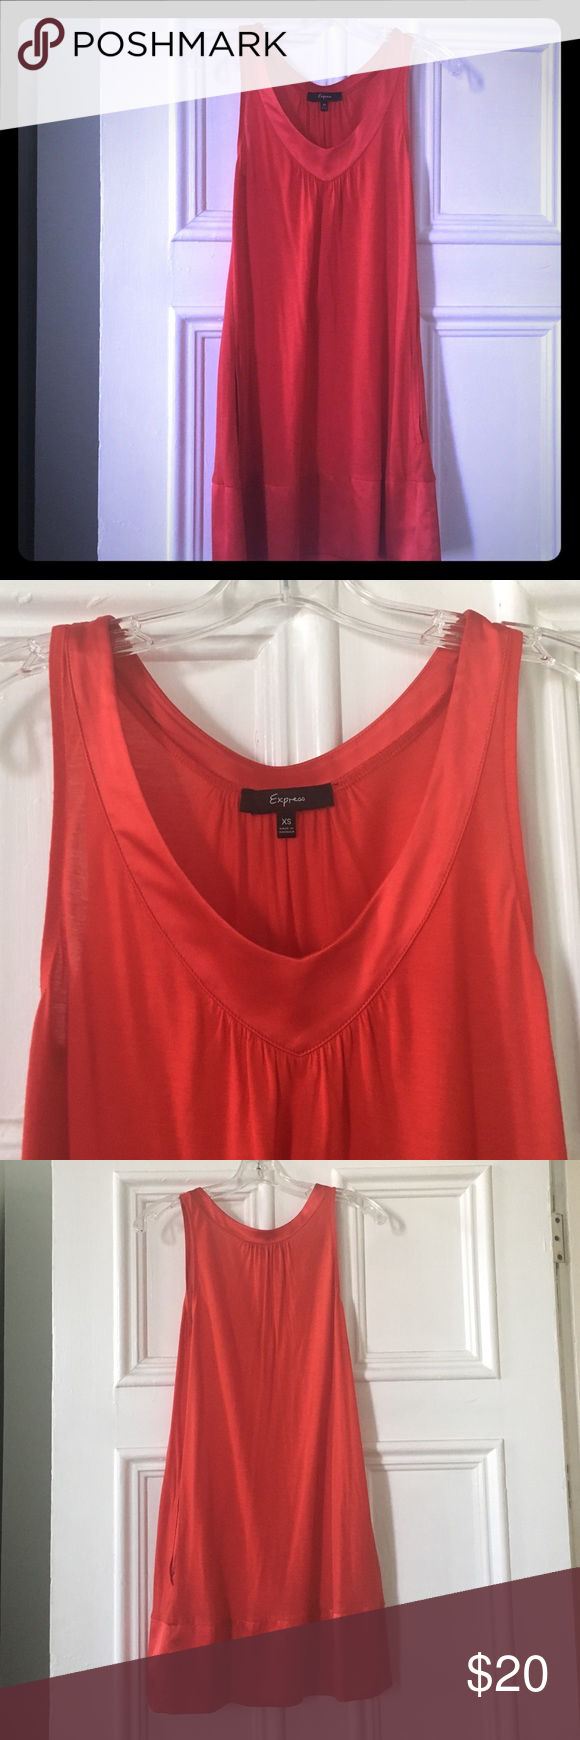 "Soft red dress with pockets! This dress was worn once to a bachelorette party! It is in perfect condition!It is super soft with a satin lining and pockets! I am 5'3"" and it was about two inches above the knees. Great for any occasion! Express Dresses Mini"